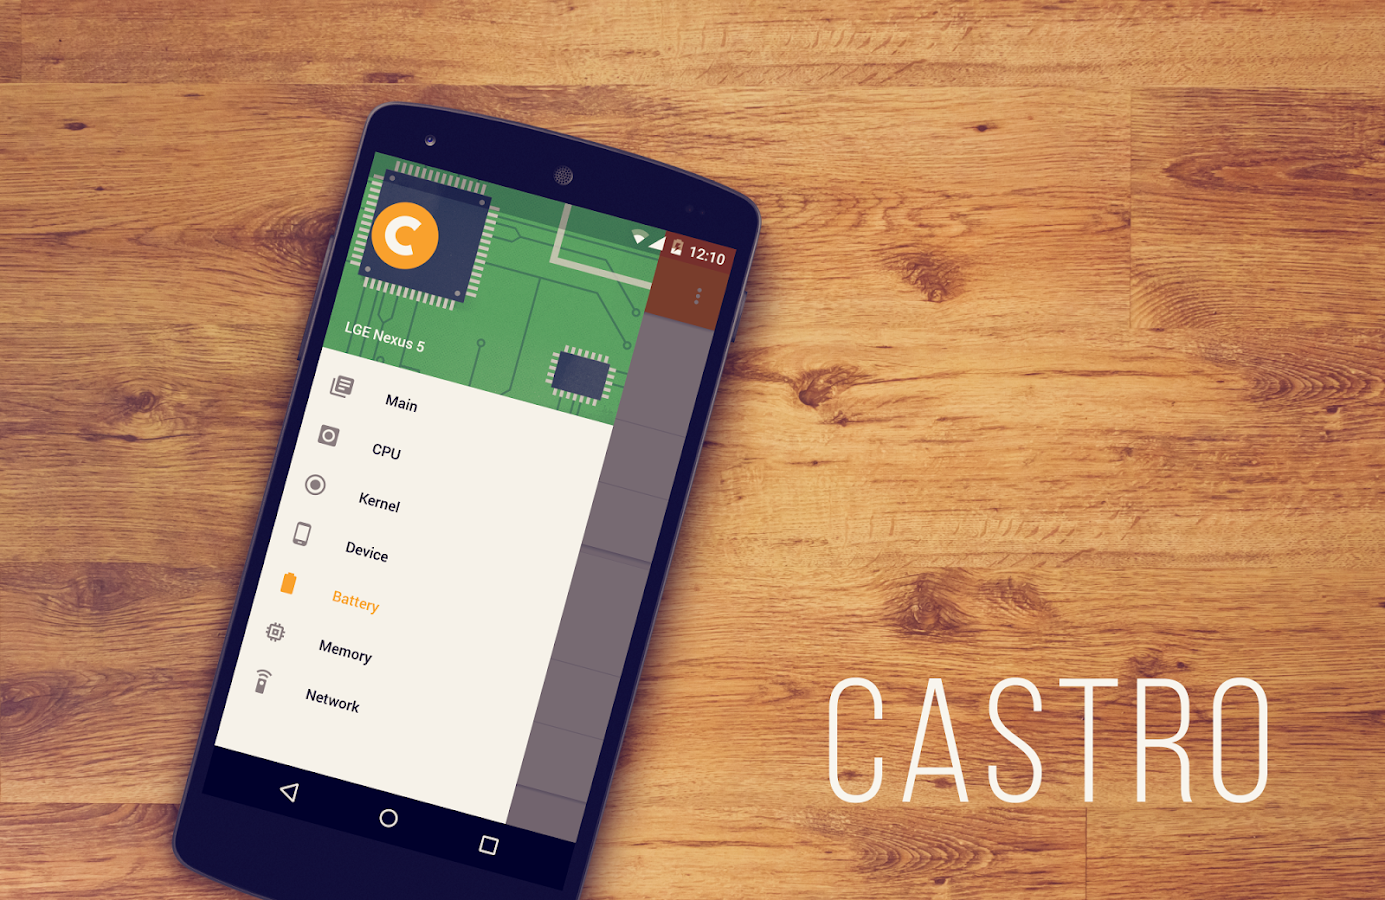 Castro - Android Apps on Google Play